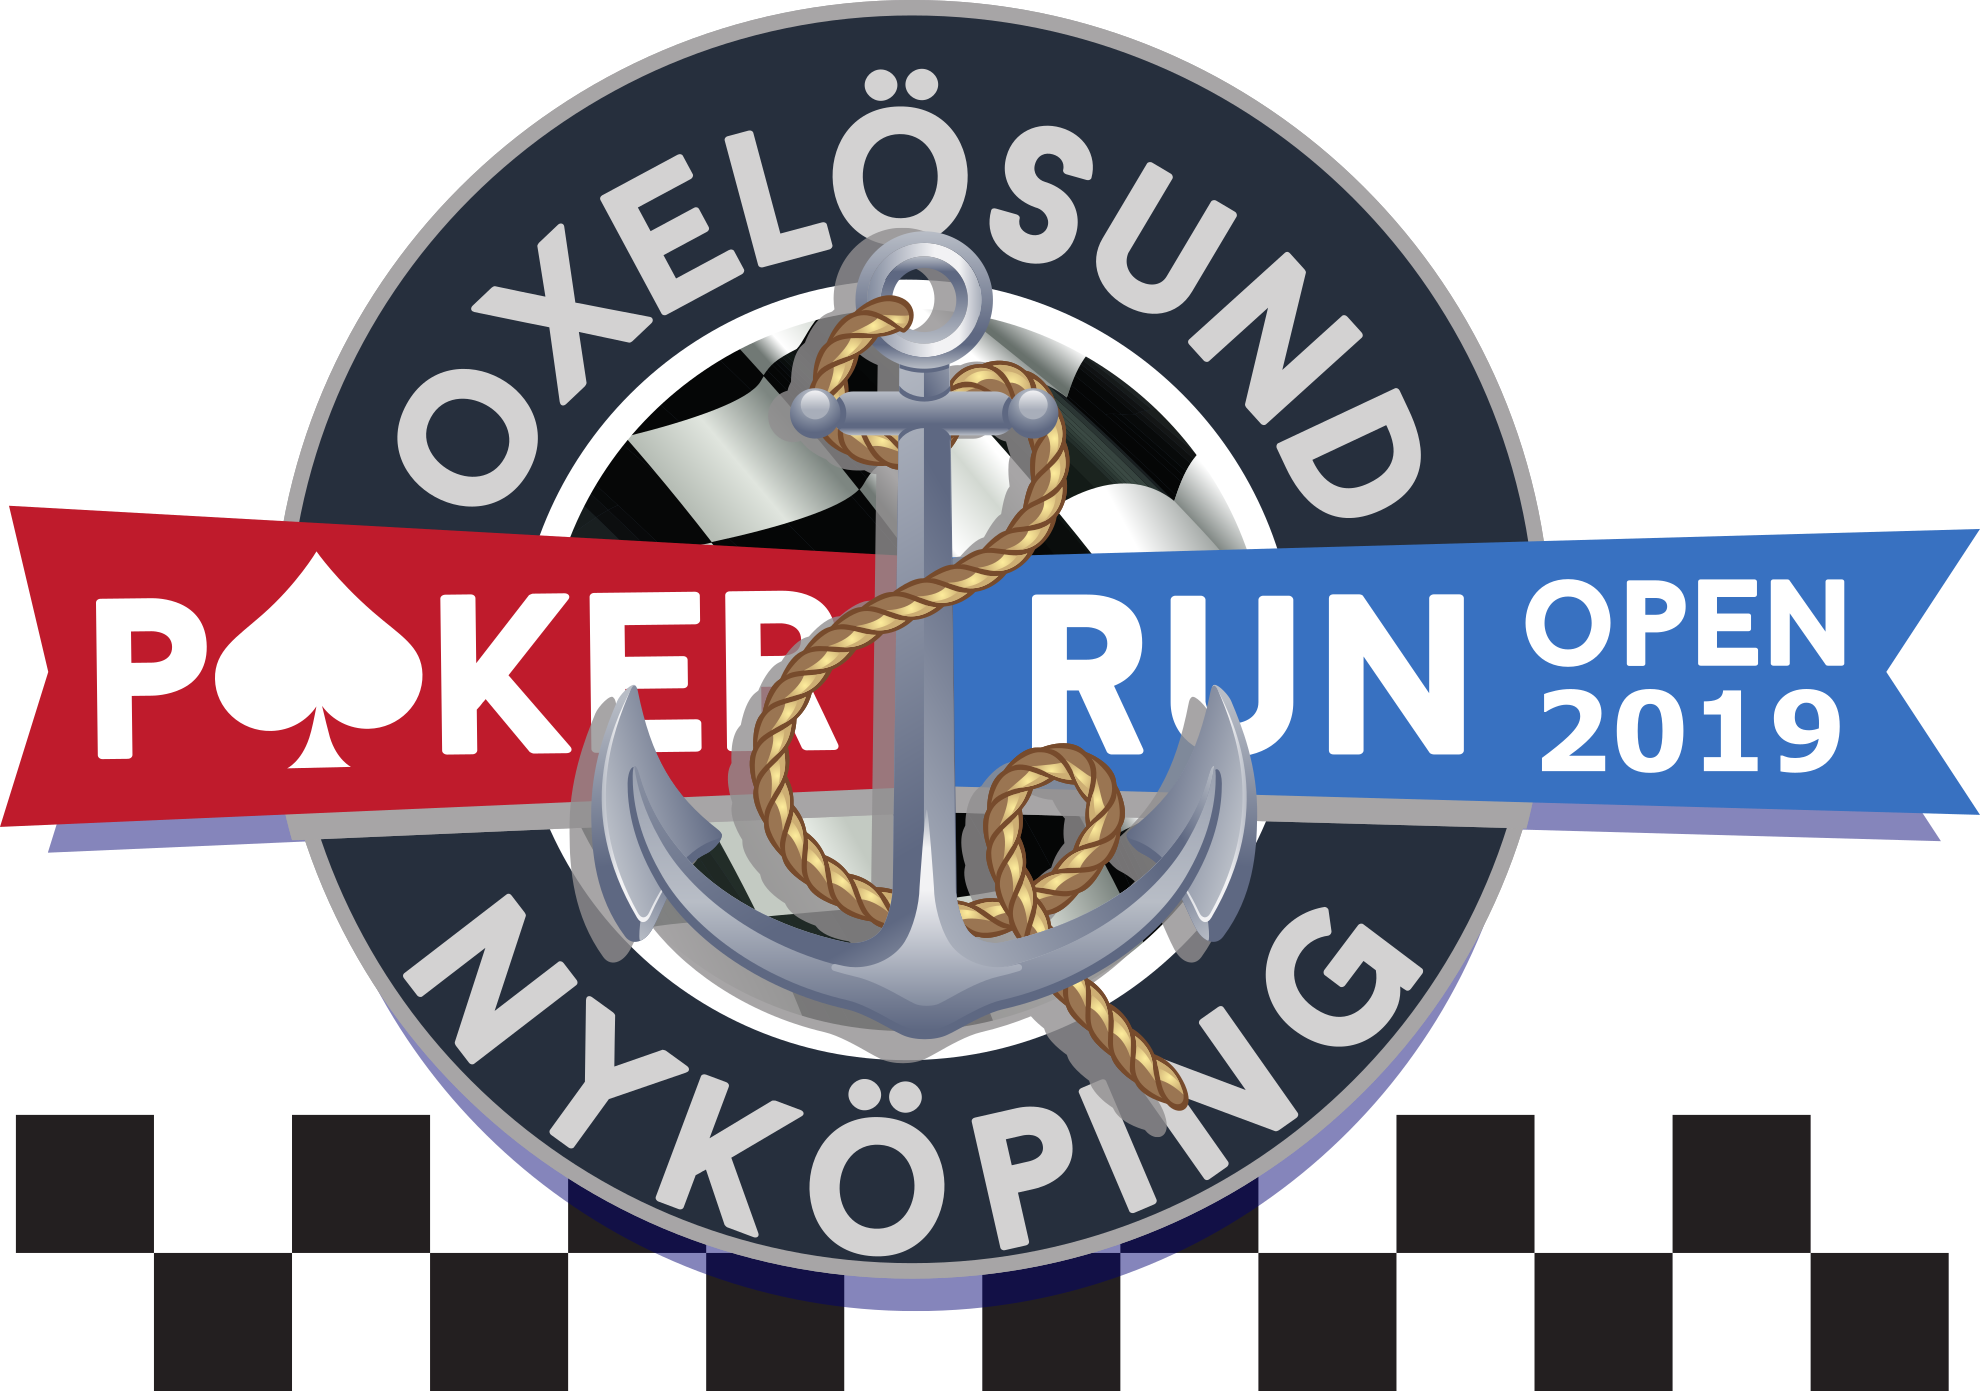 Poker Run Open Oxelösund-Nyköping